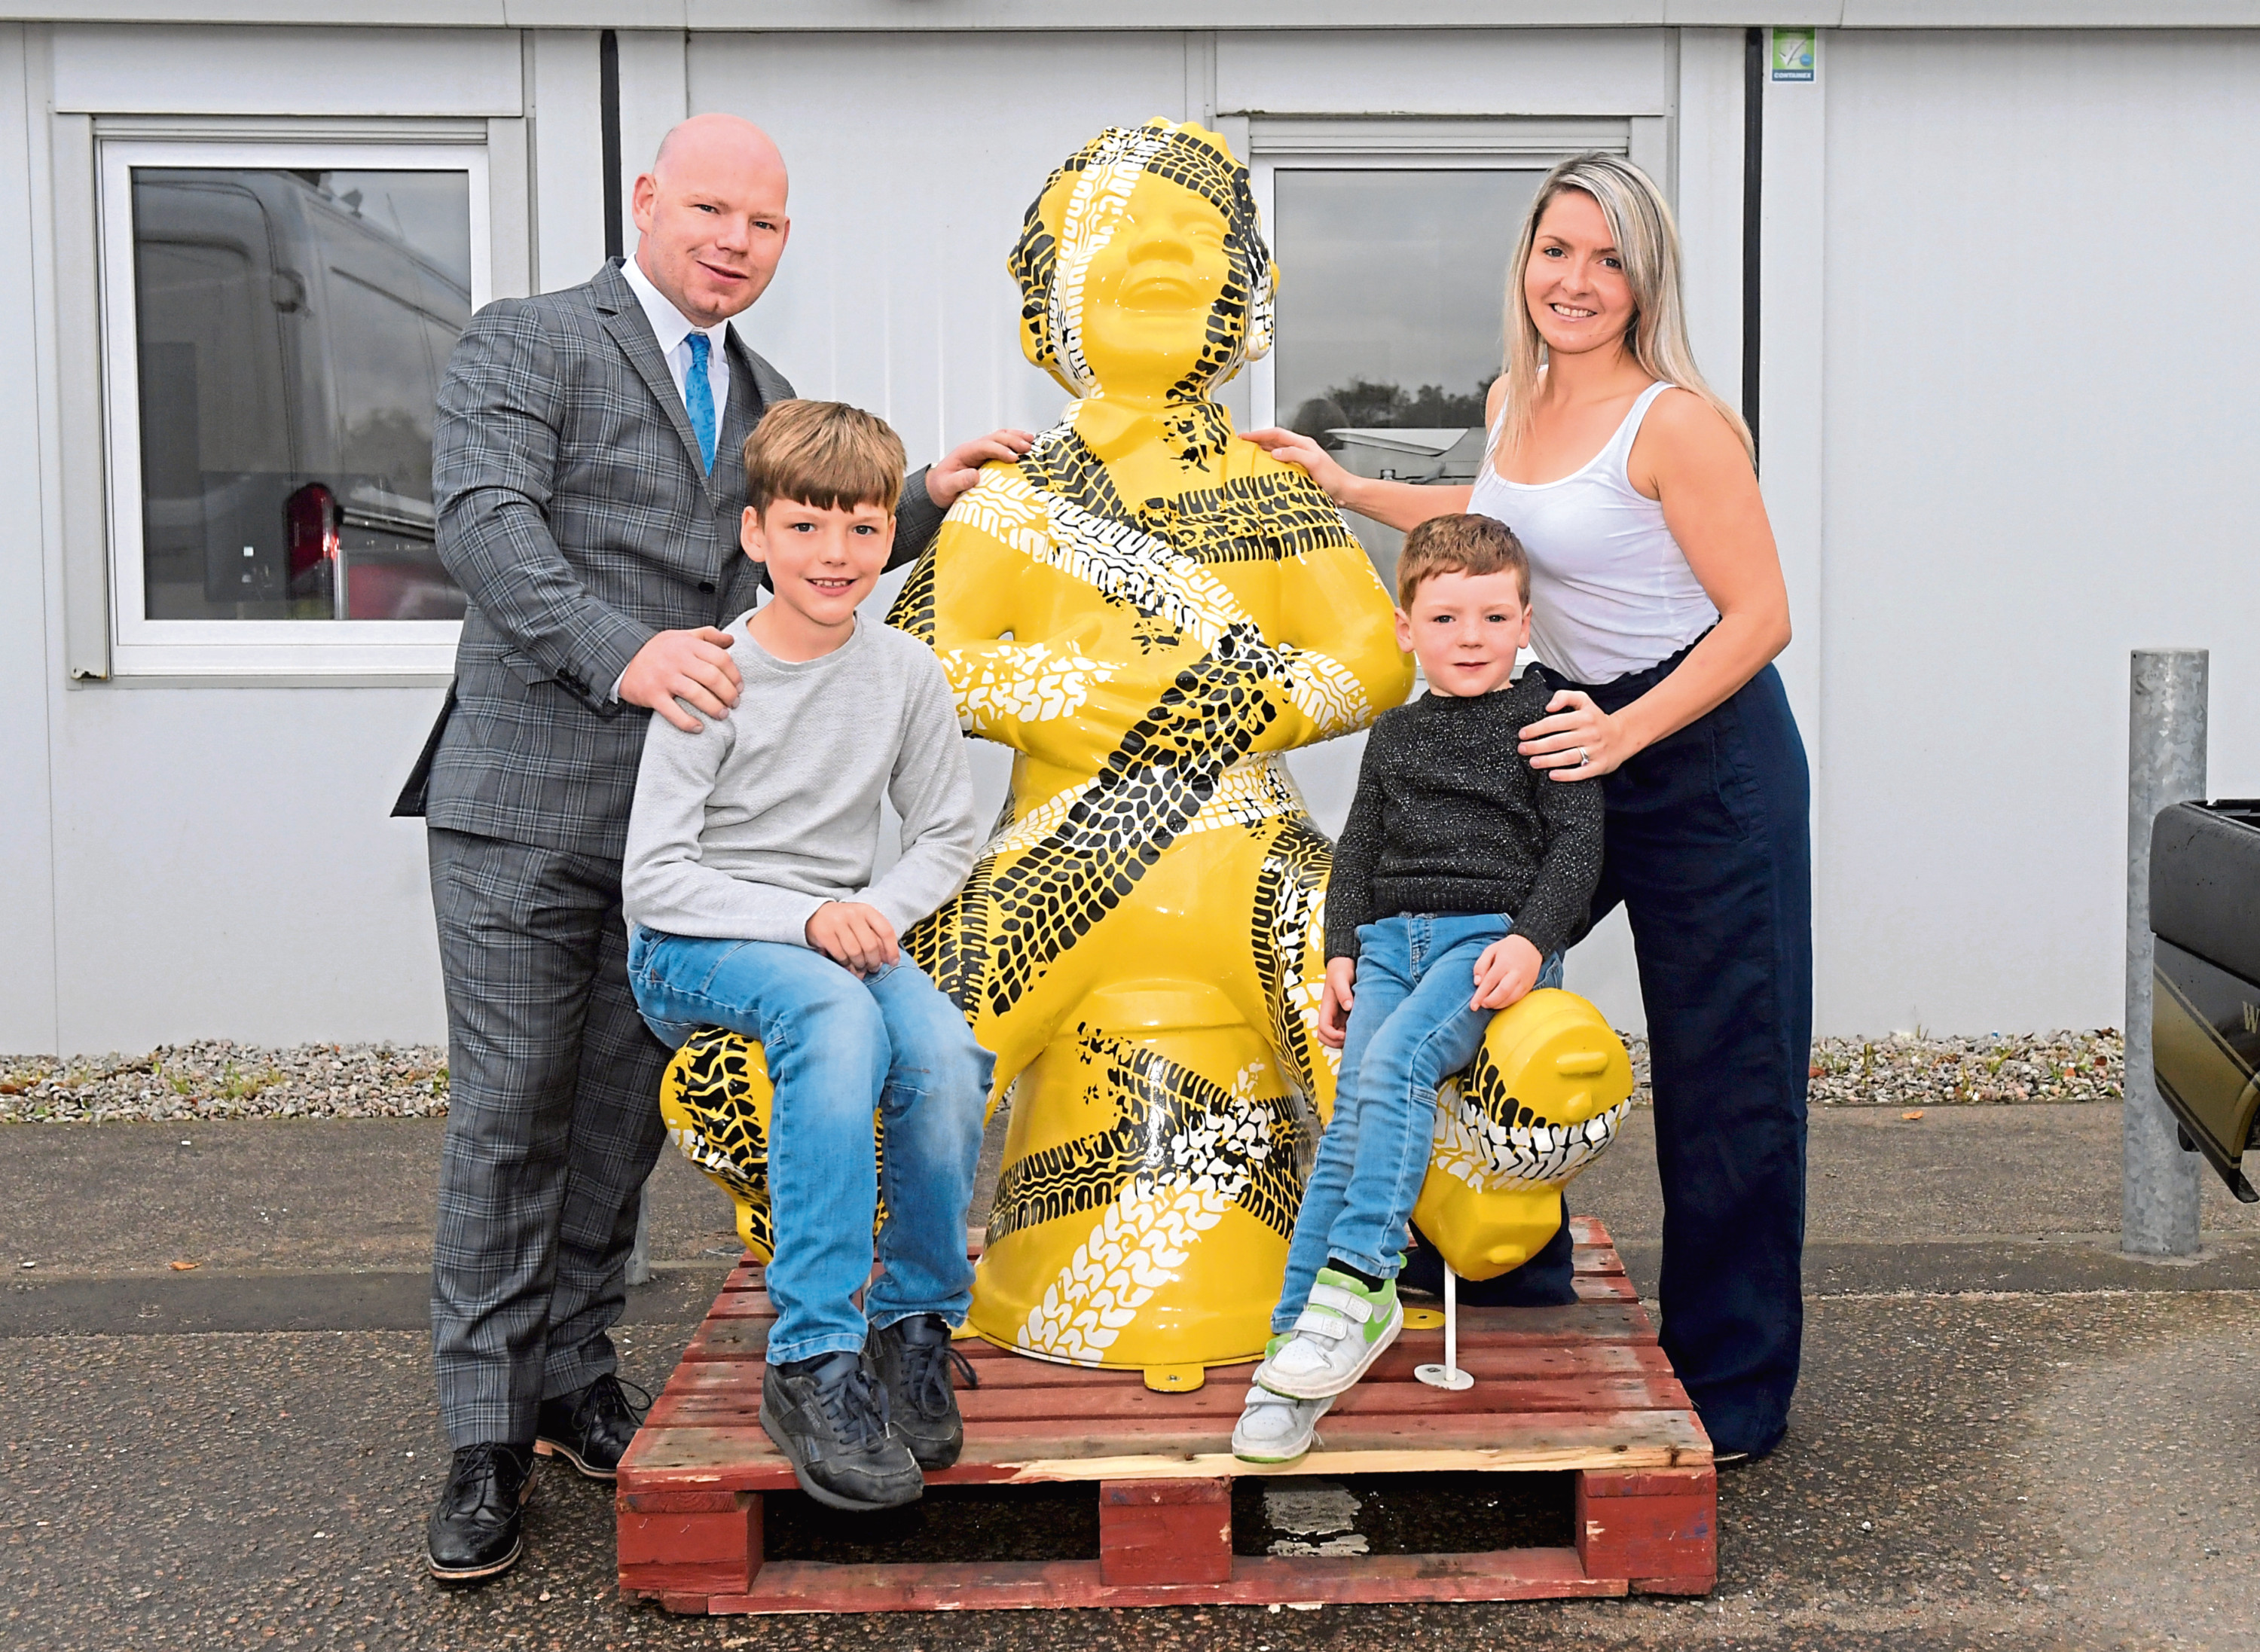 Steven and Jen Shepherd with their two boys Codey and Jude picked up Oor Roadie. Picture by Kath Flannery